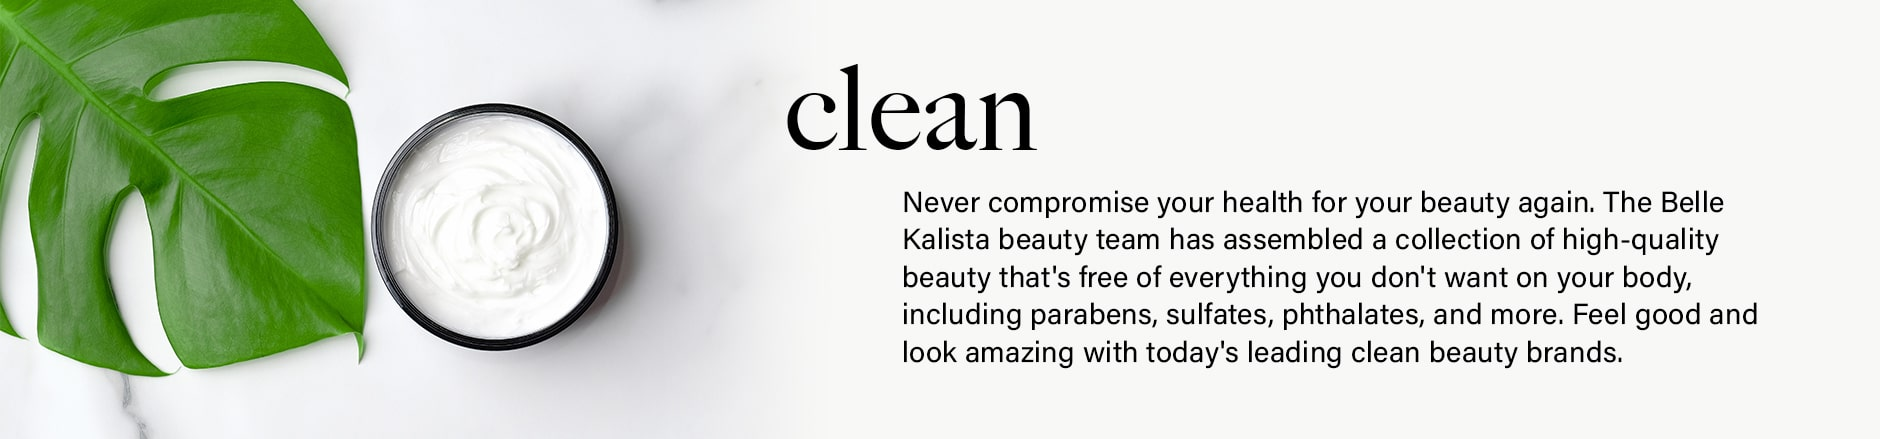 clean-beauty-collection-banner-image